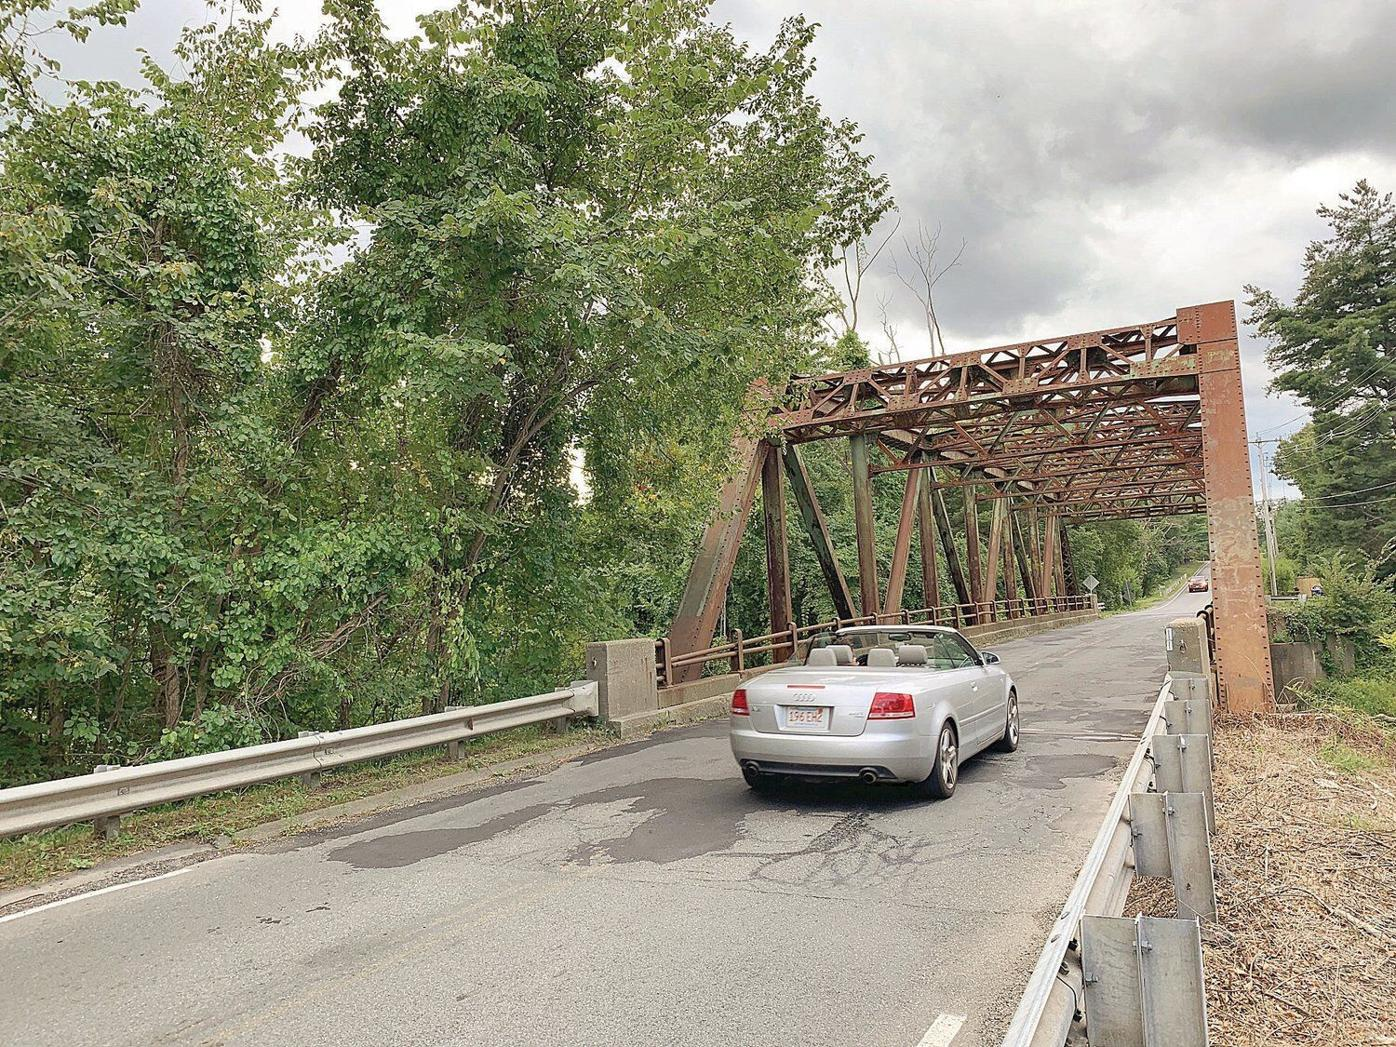 Anxiety rises as state orders shutdown of Division Street bridge in Great Barrington